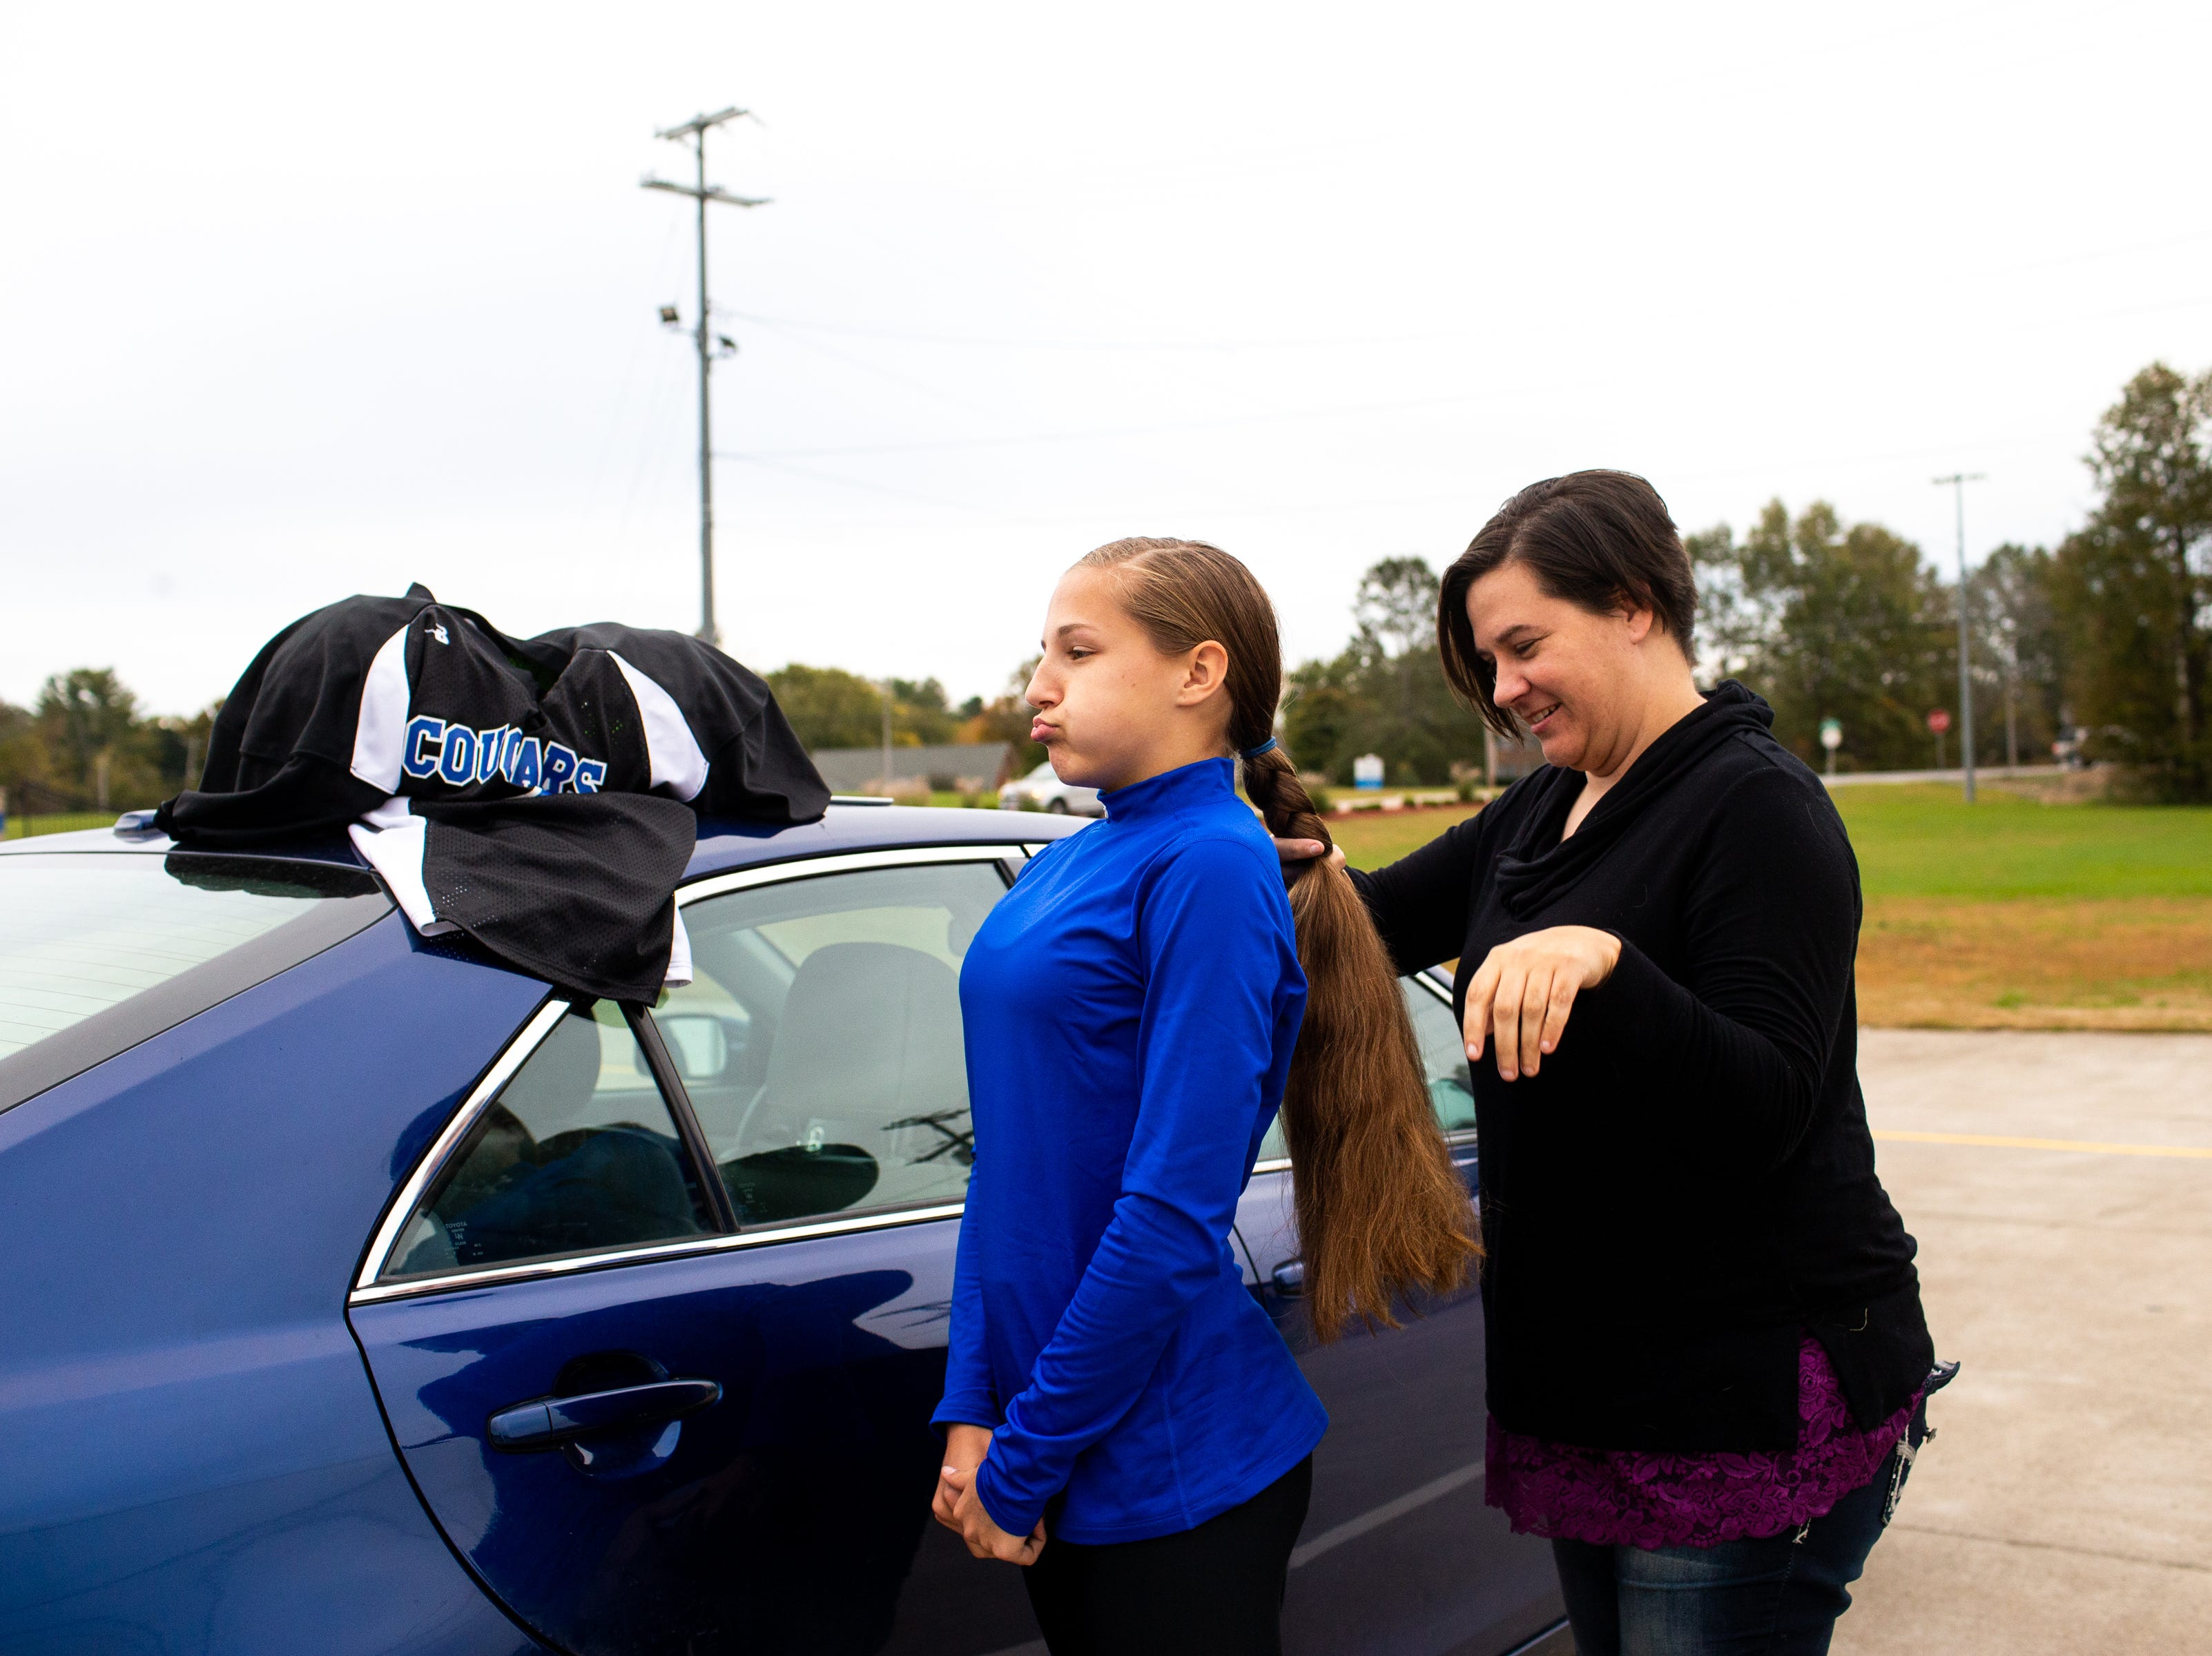 Deidre Freeman braids her daughter, Elizabeth Cundiff's, hair in the parking lot before the game at the Clarksville Academy Sports Complex Thursday, Oct. 25, 2018, in Clarksville, Tenn. During a game, Elizabeth's ponytail is tucked into her jersey so other players won't pull it.